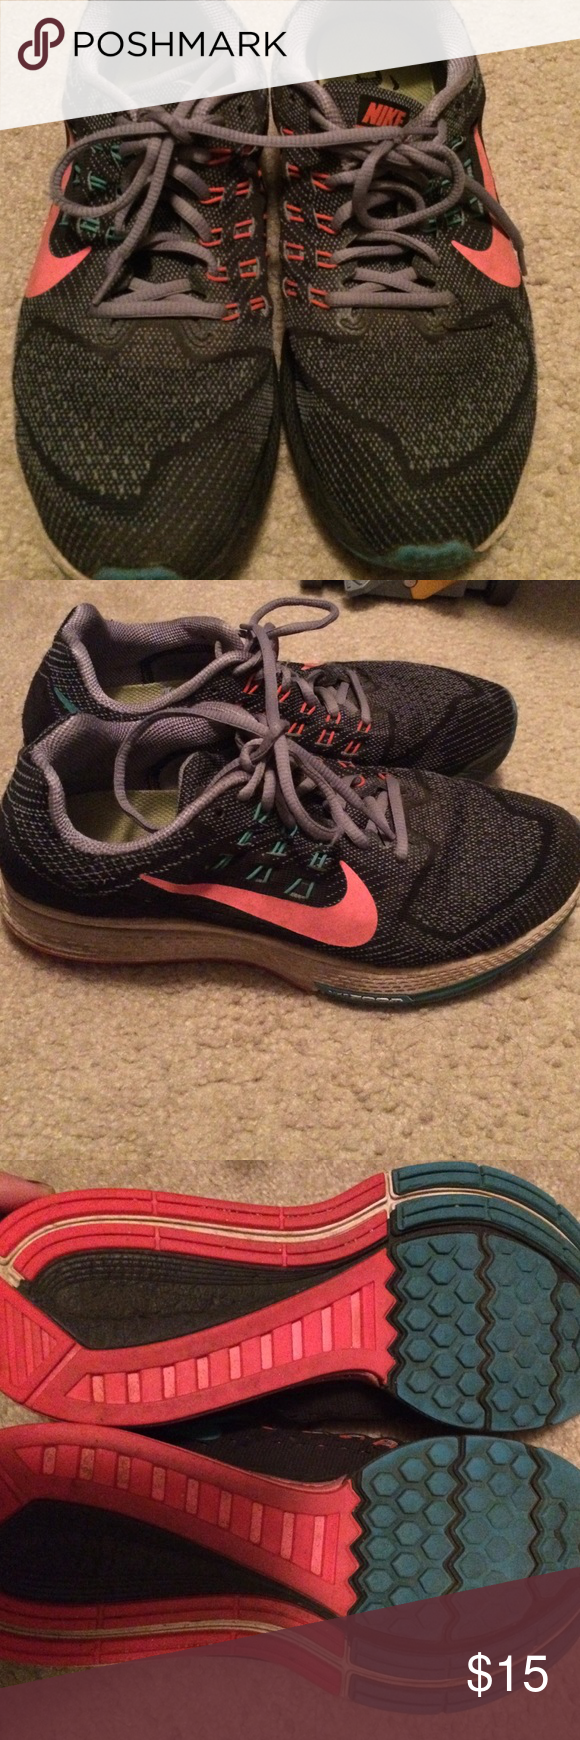 Nike running sneakers Running sneakers 👟 gently used as shown in pictures Nike Shoes Athletic Shoes